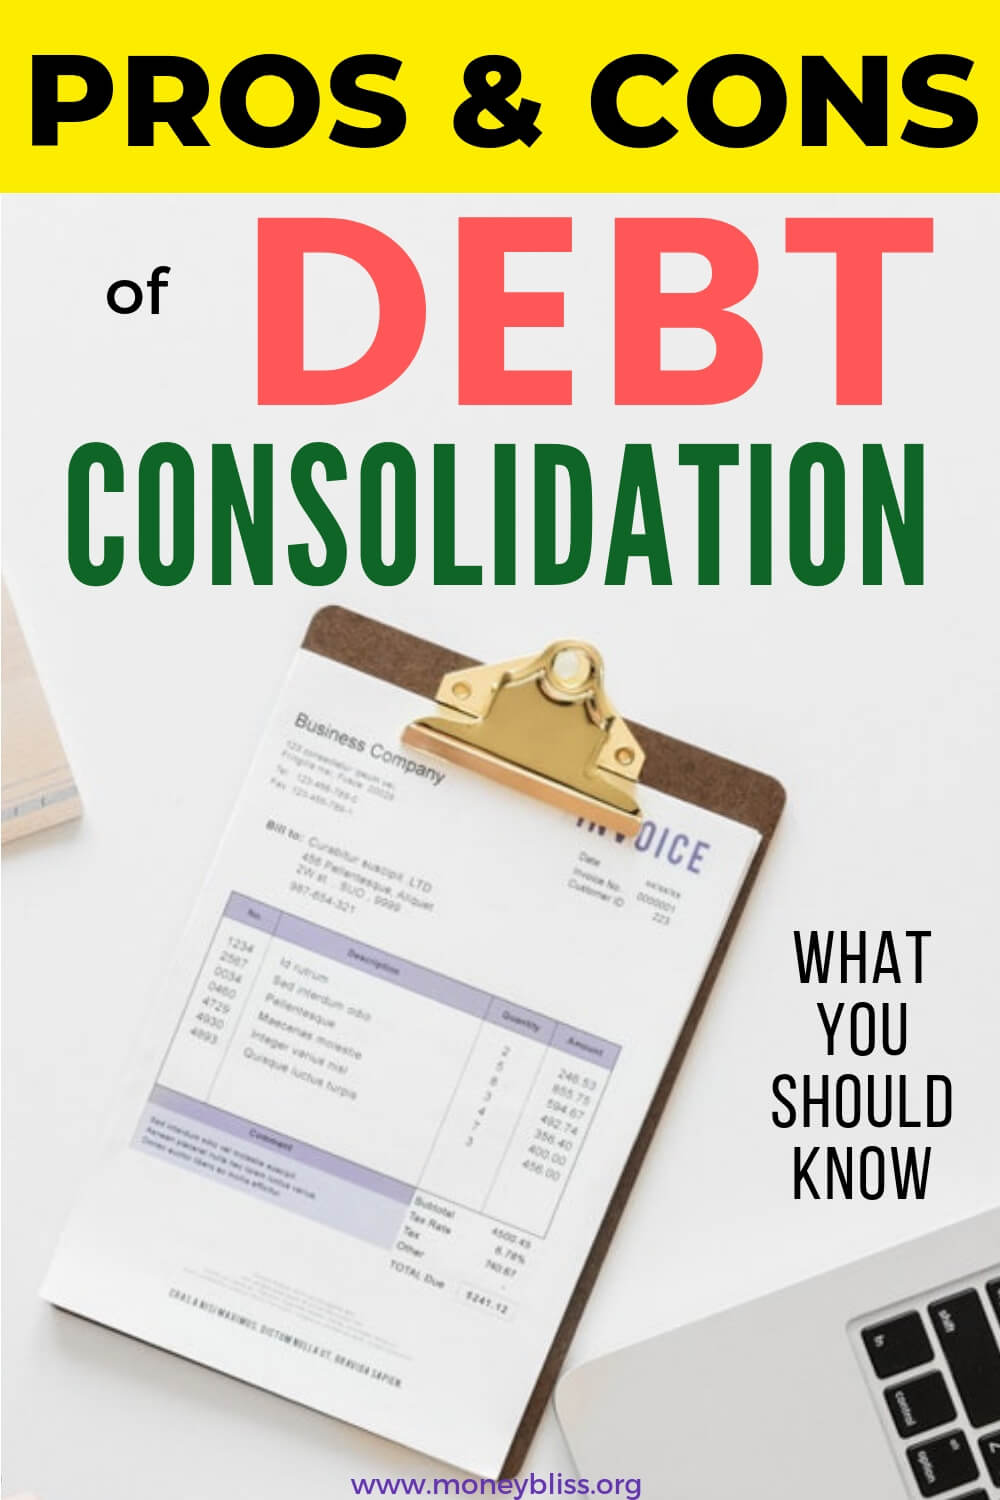 Pros and cons of debt consolidation. Understand the full impact of a loan and working with debt consolidation lenders and companies. Tips on how to get out of debt while saving money on interest. #debt #moneybliss